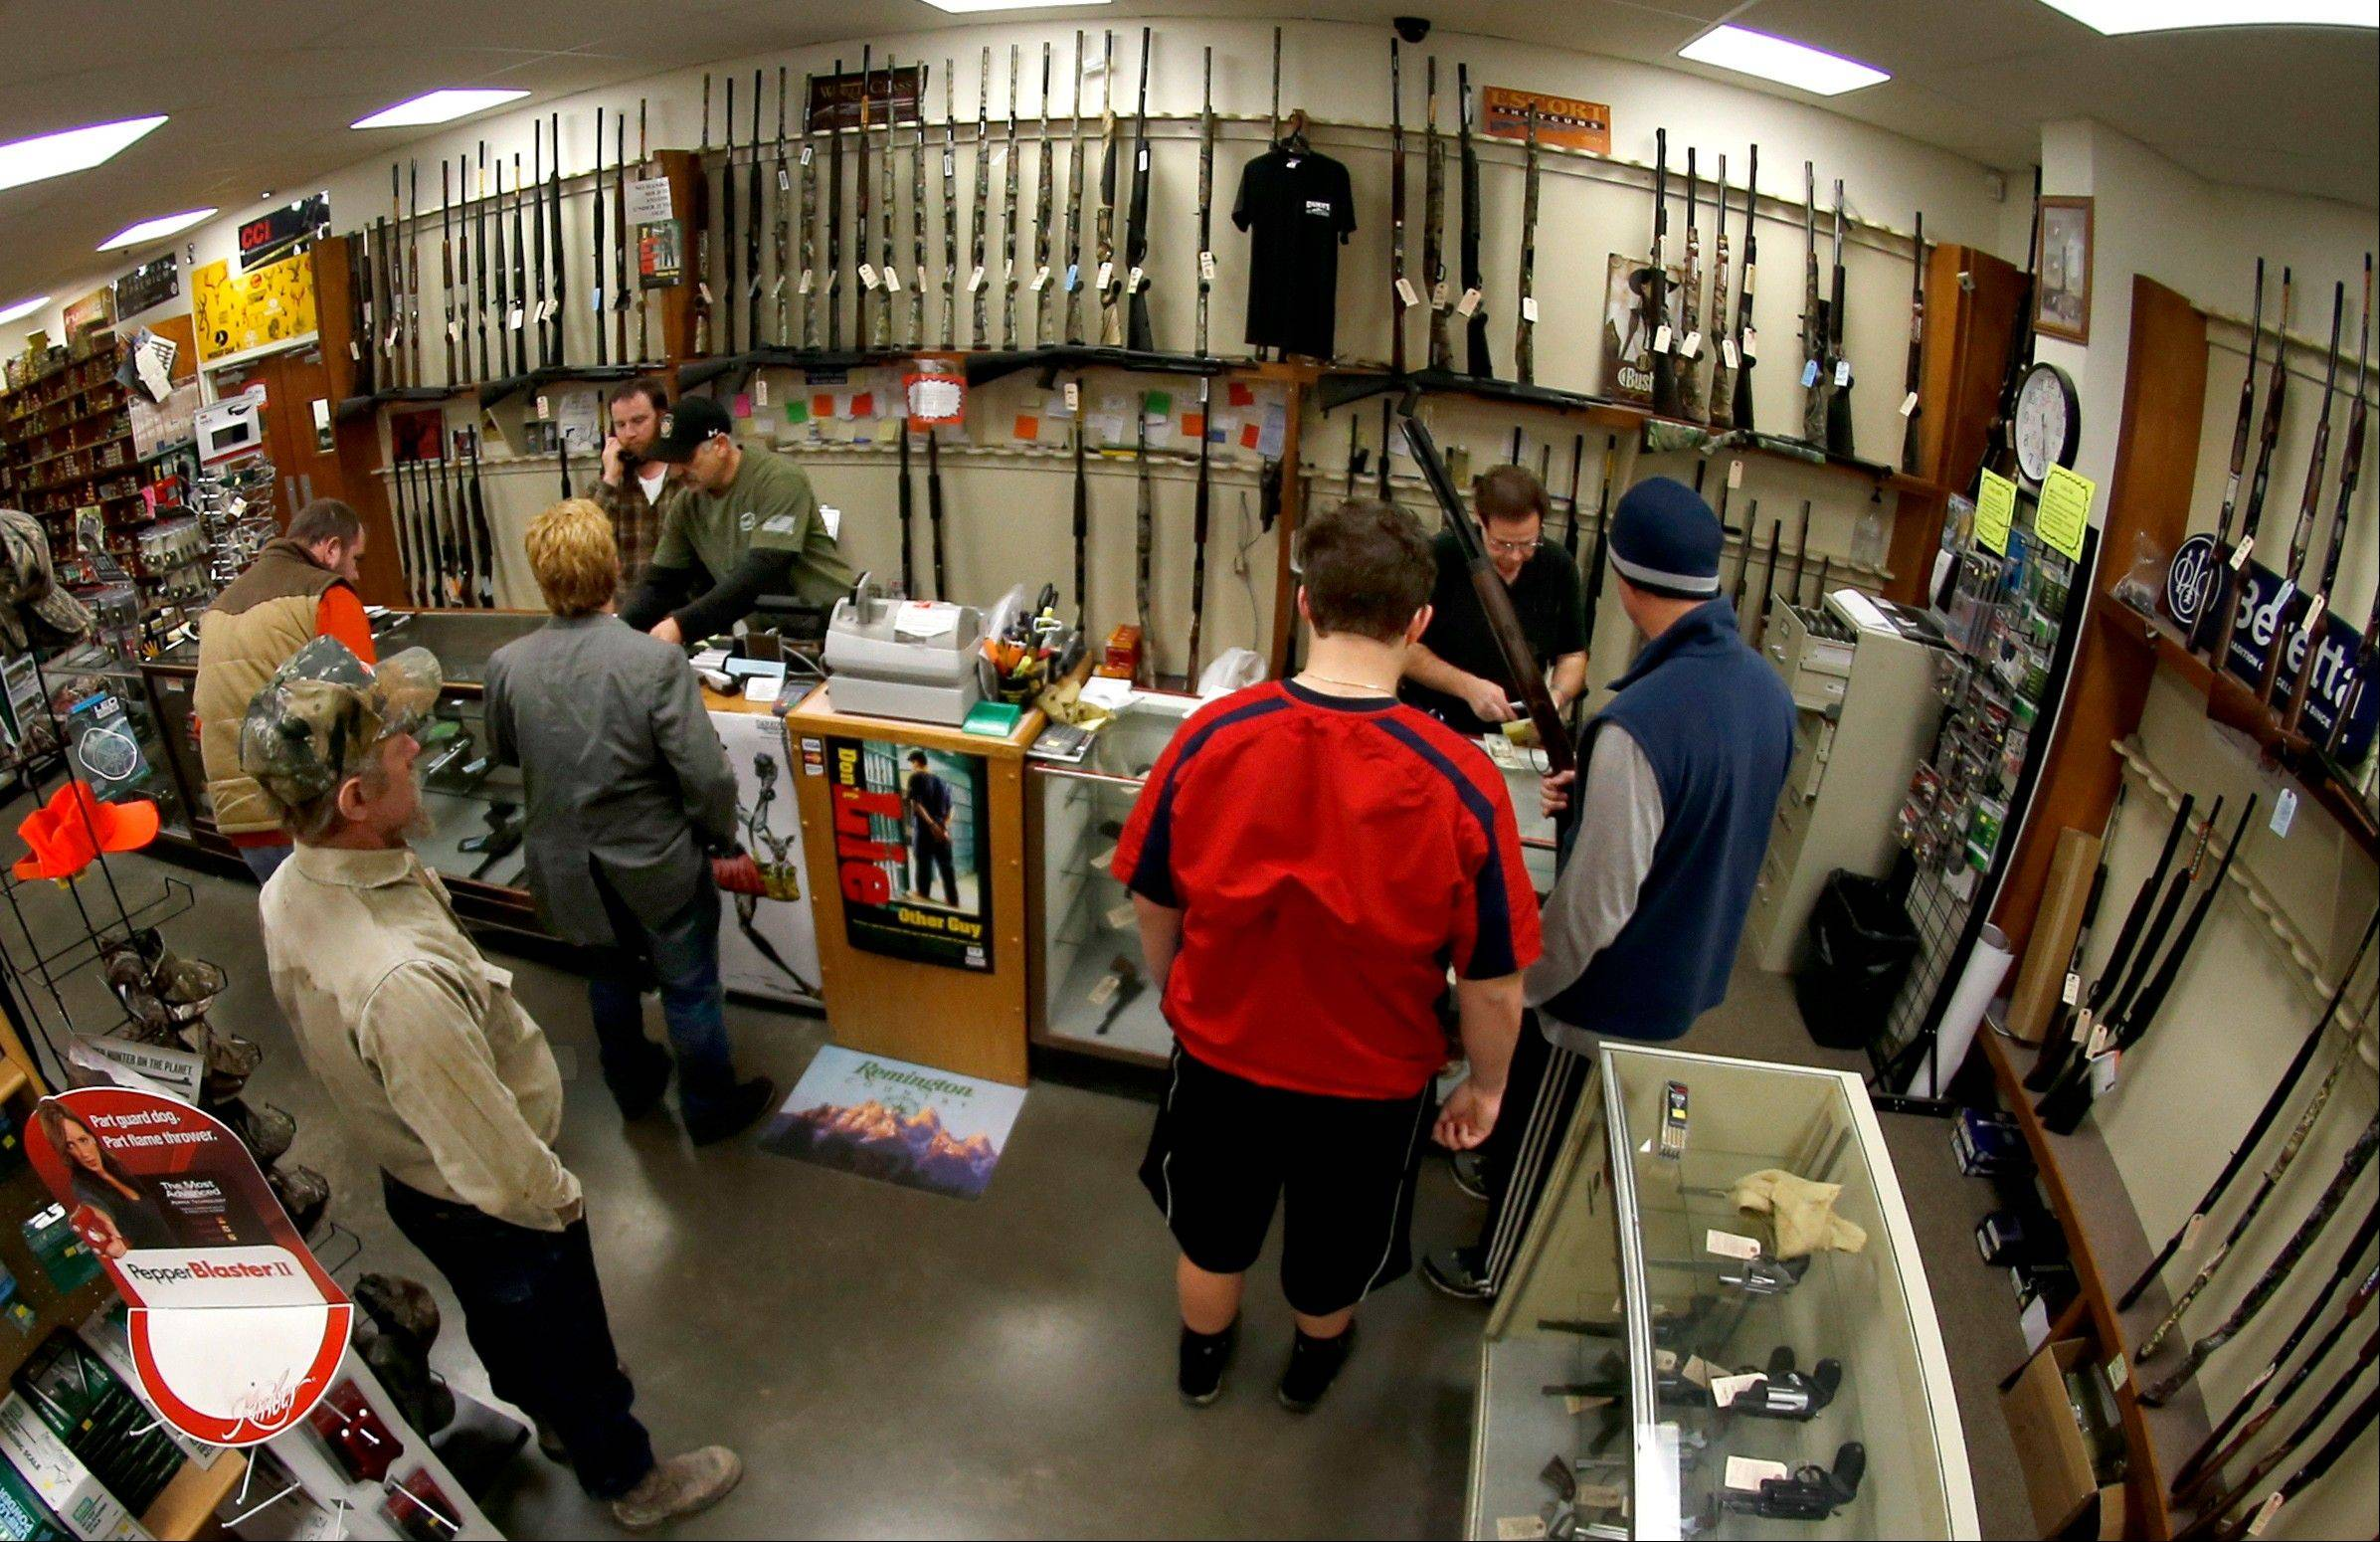 The FBI posted new data for gun background checks covering through January 2013 that says gun checks dropped more than 10 percent nationwide, from roughly 2.8 million in December 2012 to 2.5 million in January 2013.